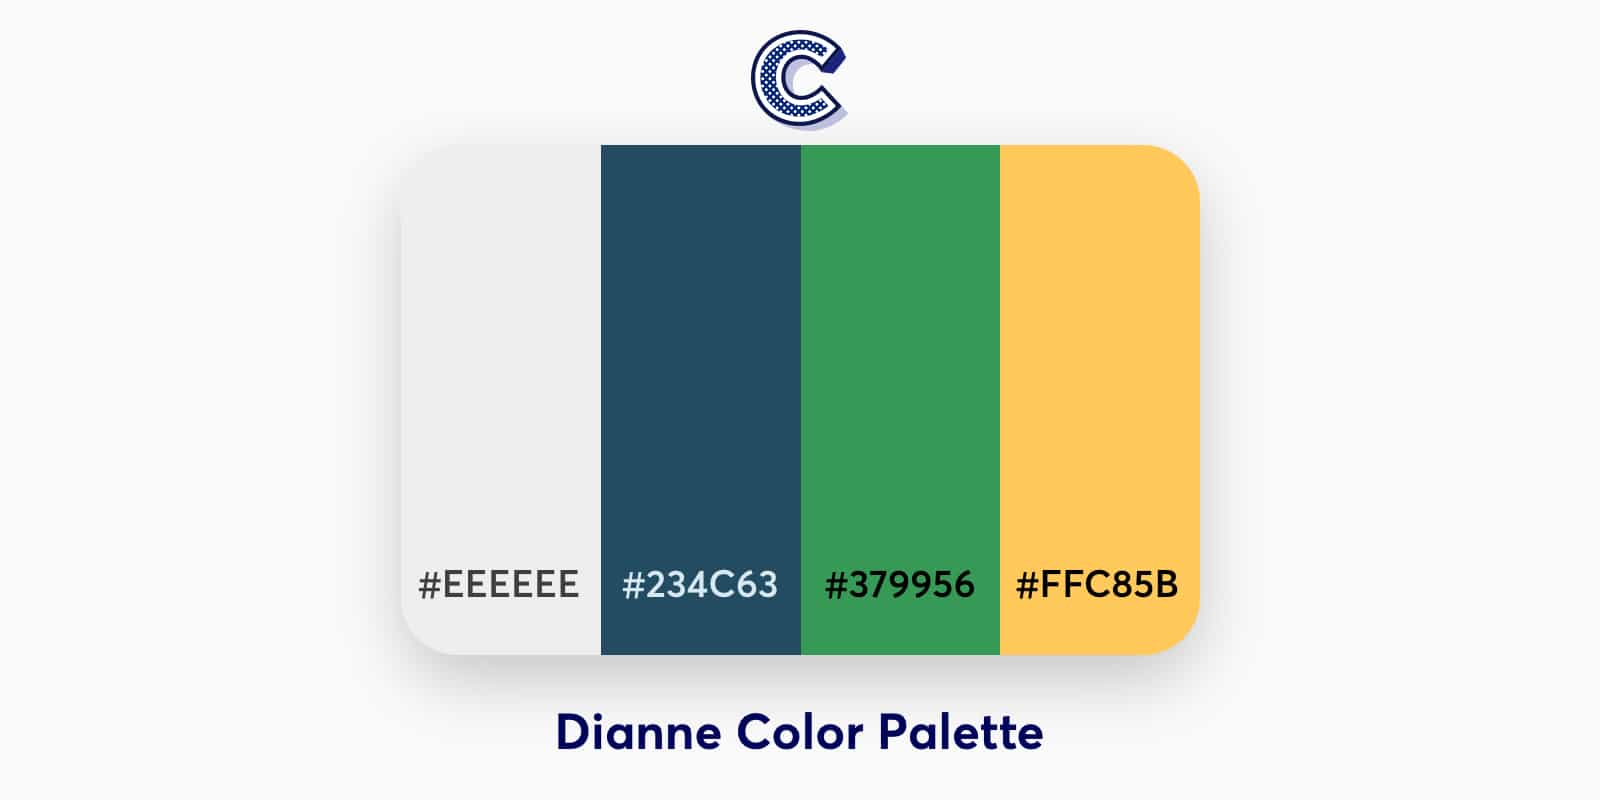 the featured image of dianne color palette